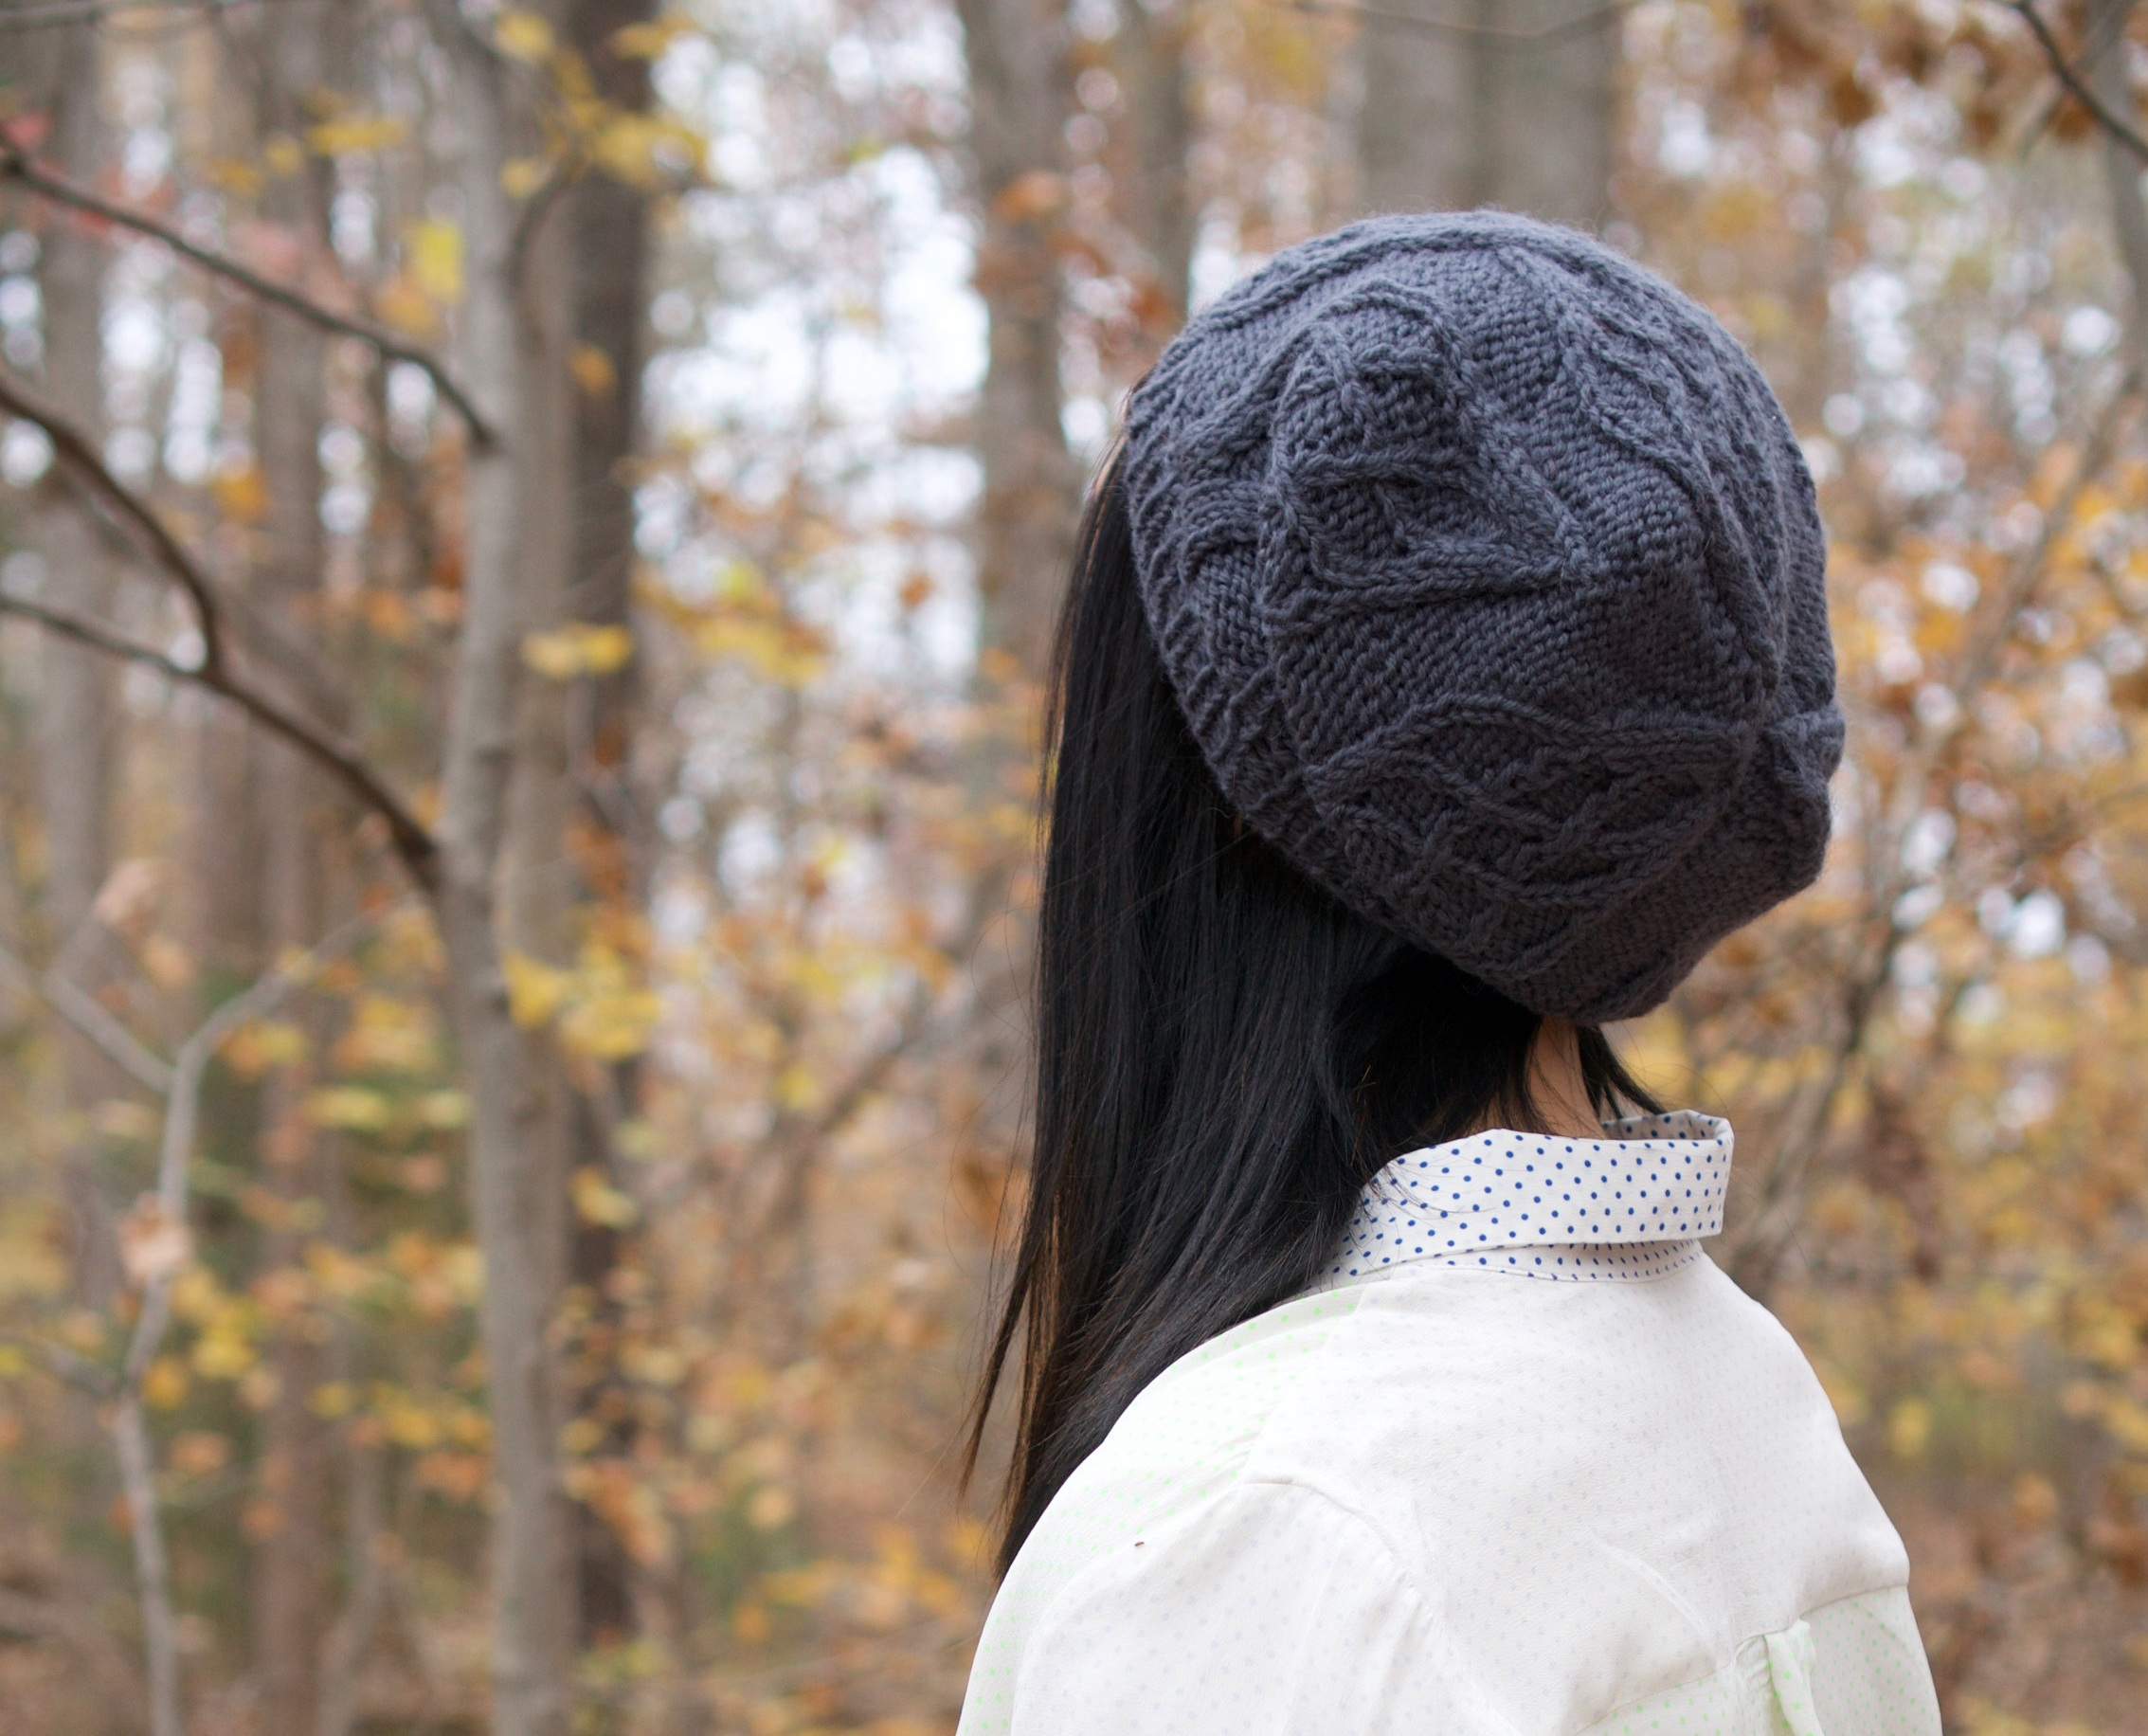 The Gothic Tracery Beanie - $6.99